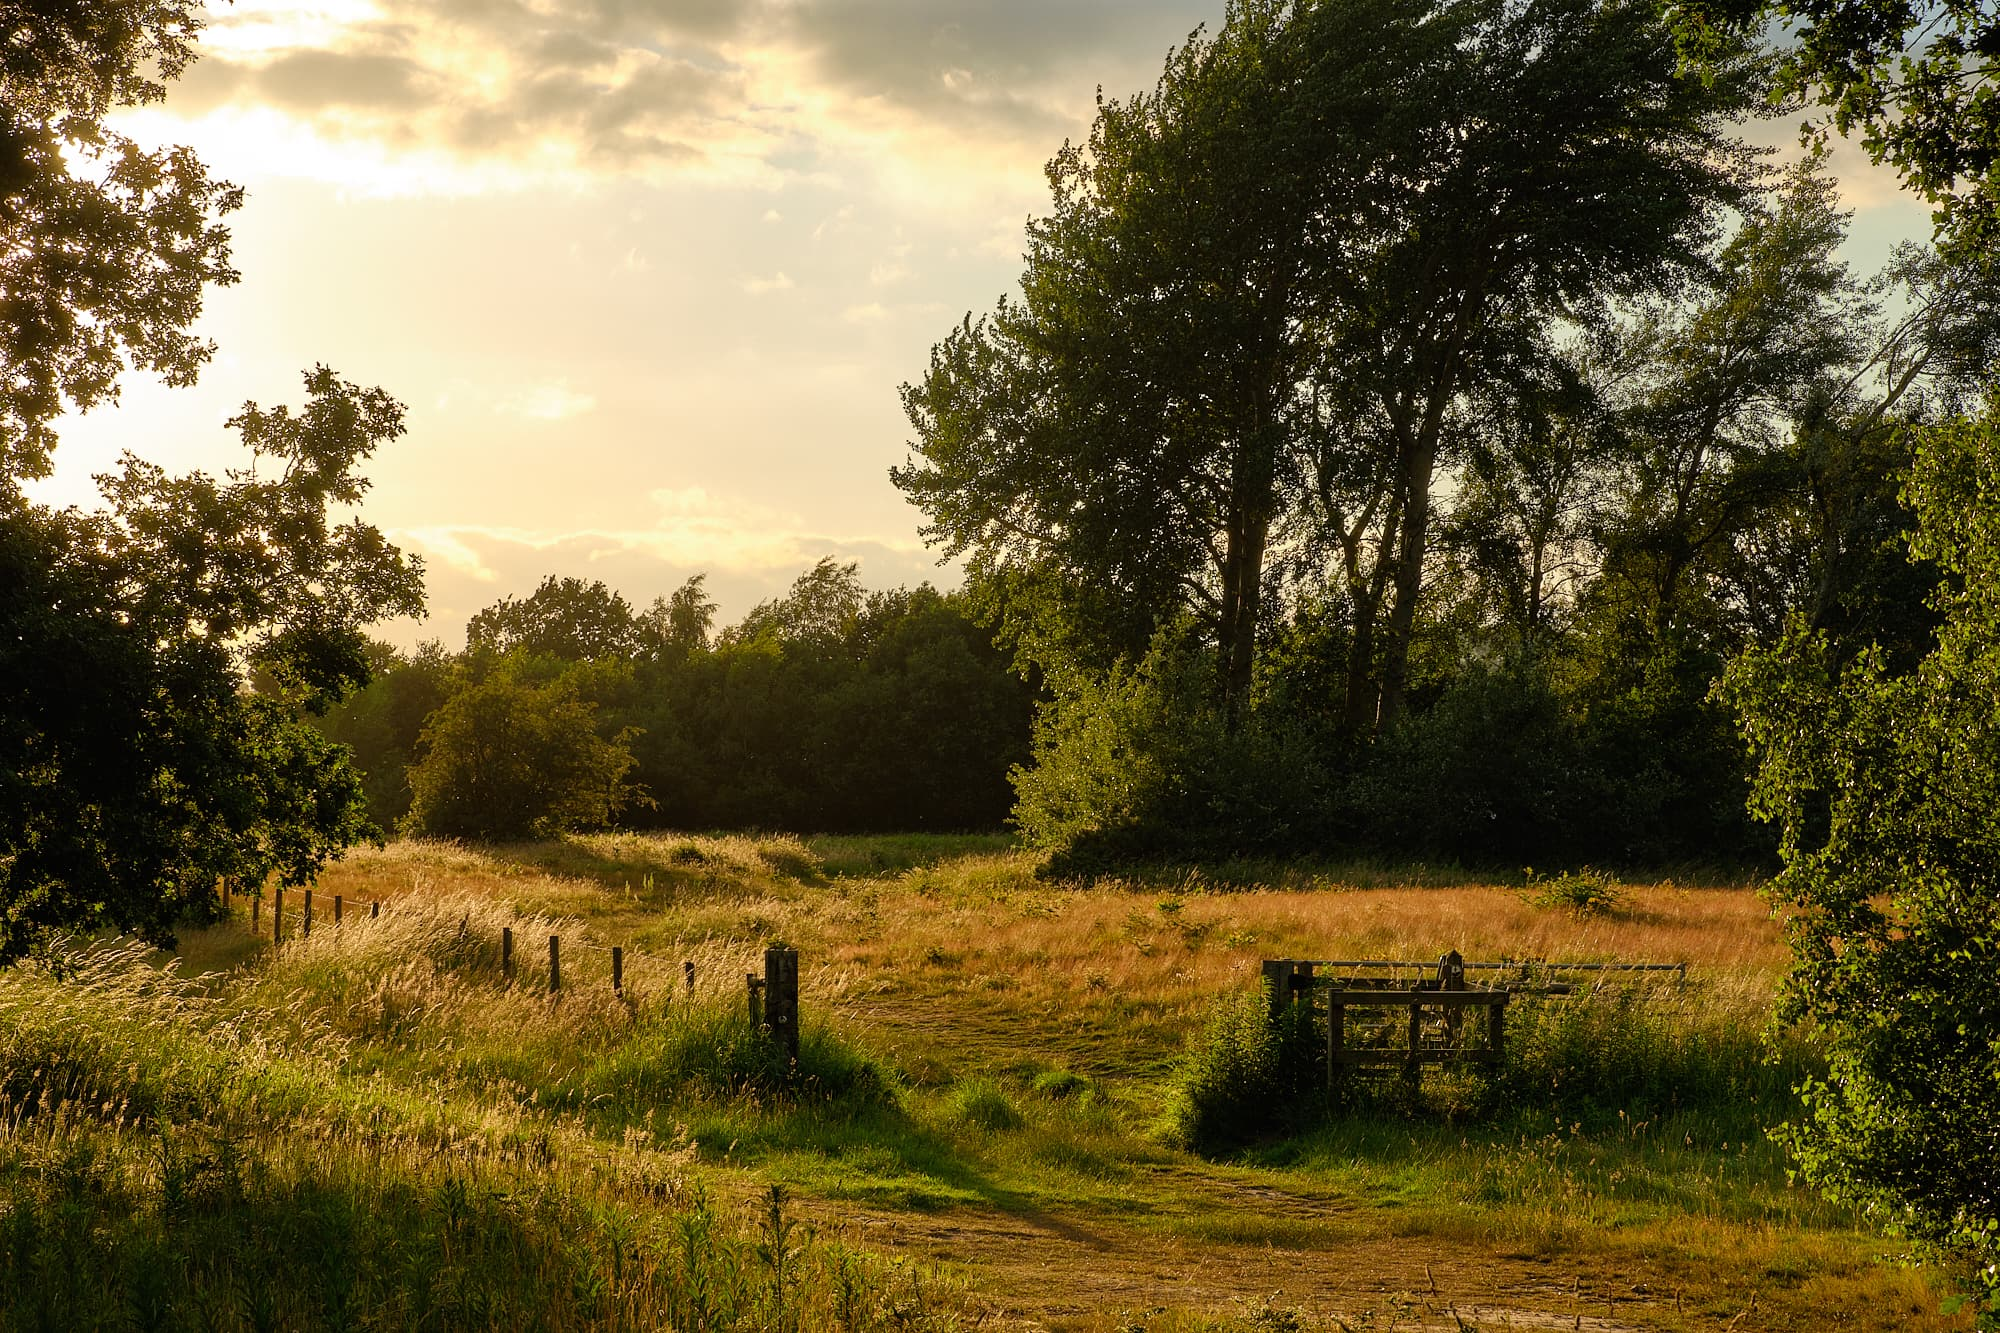 evening at Outney Meadow, Bungay